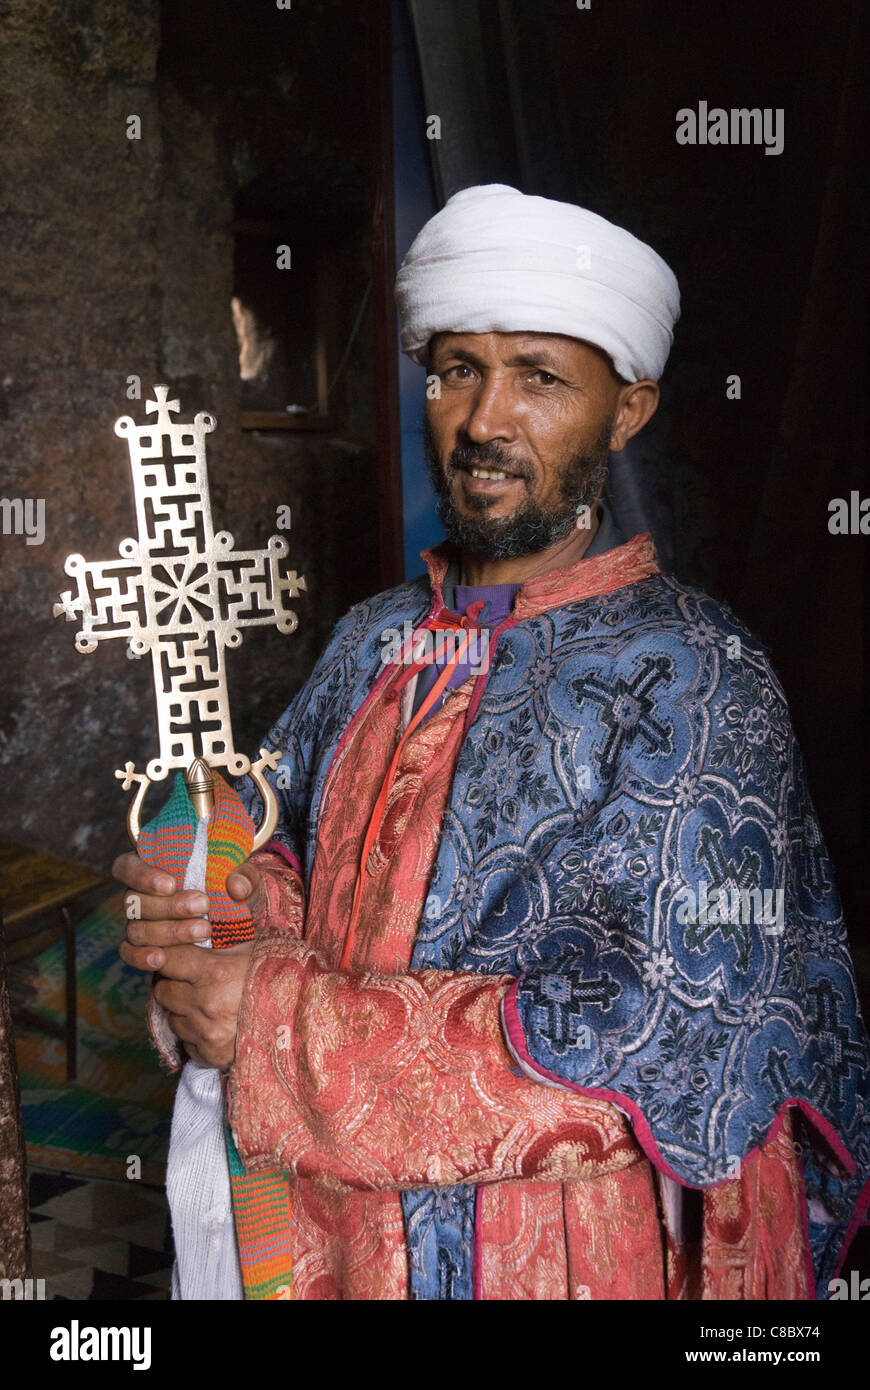 Elk200-3206v Ethiopia, Lalibela, rock cut church, 12th-13th c, Bet Meskel-Danaghel, priest holding cross - Stock Image